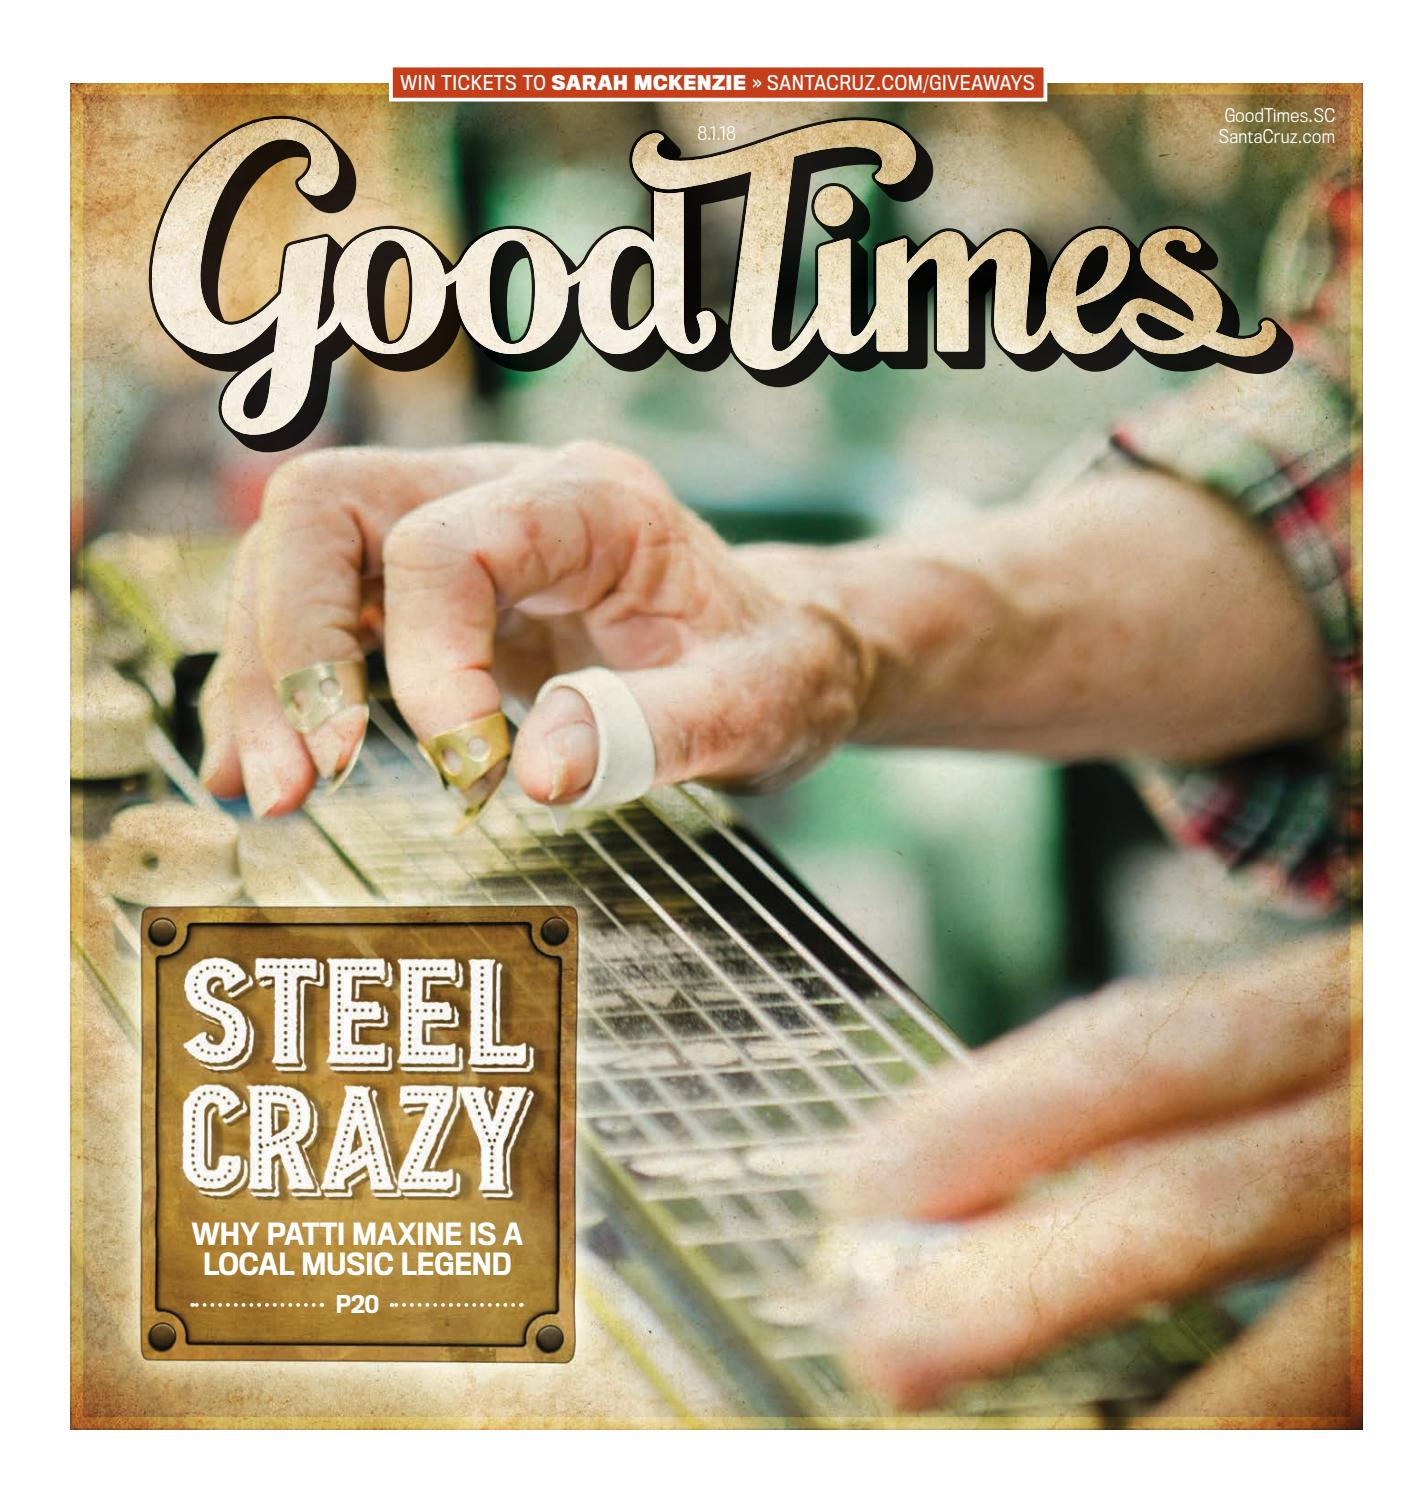 c083f7e1 Good Times Santa Cruz 1831 by Metro Publishing - issuu